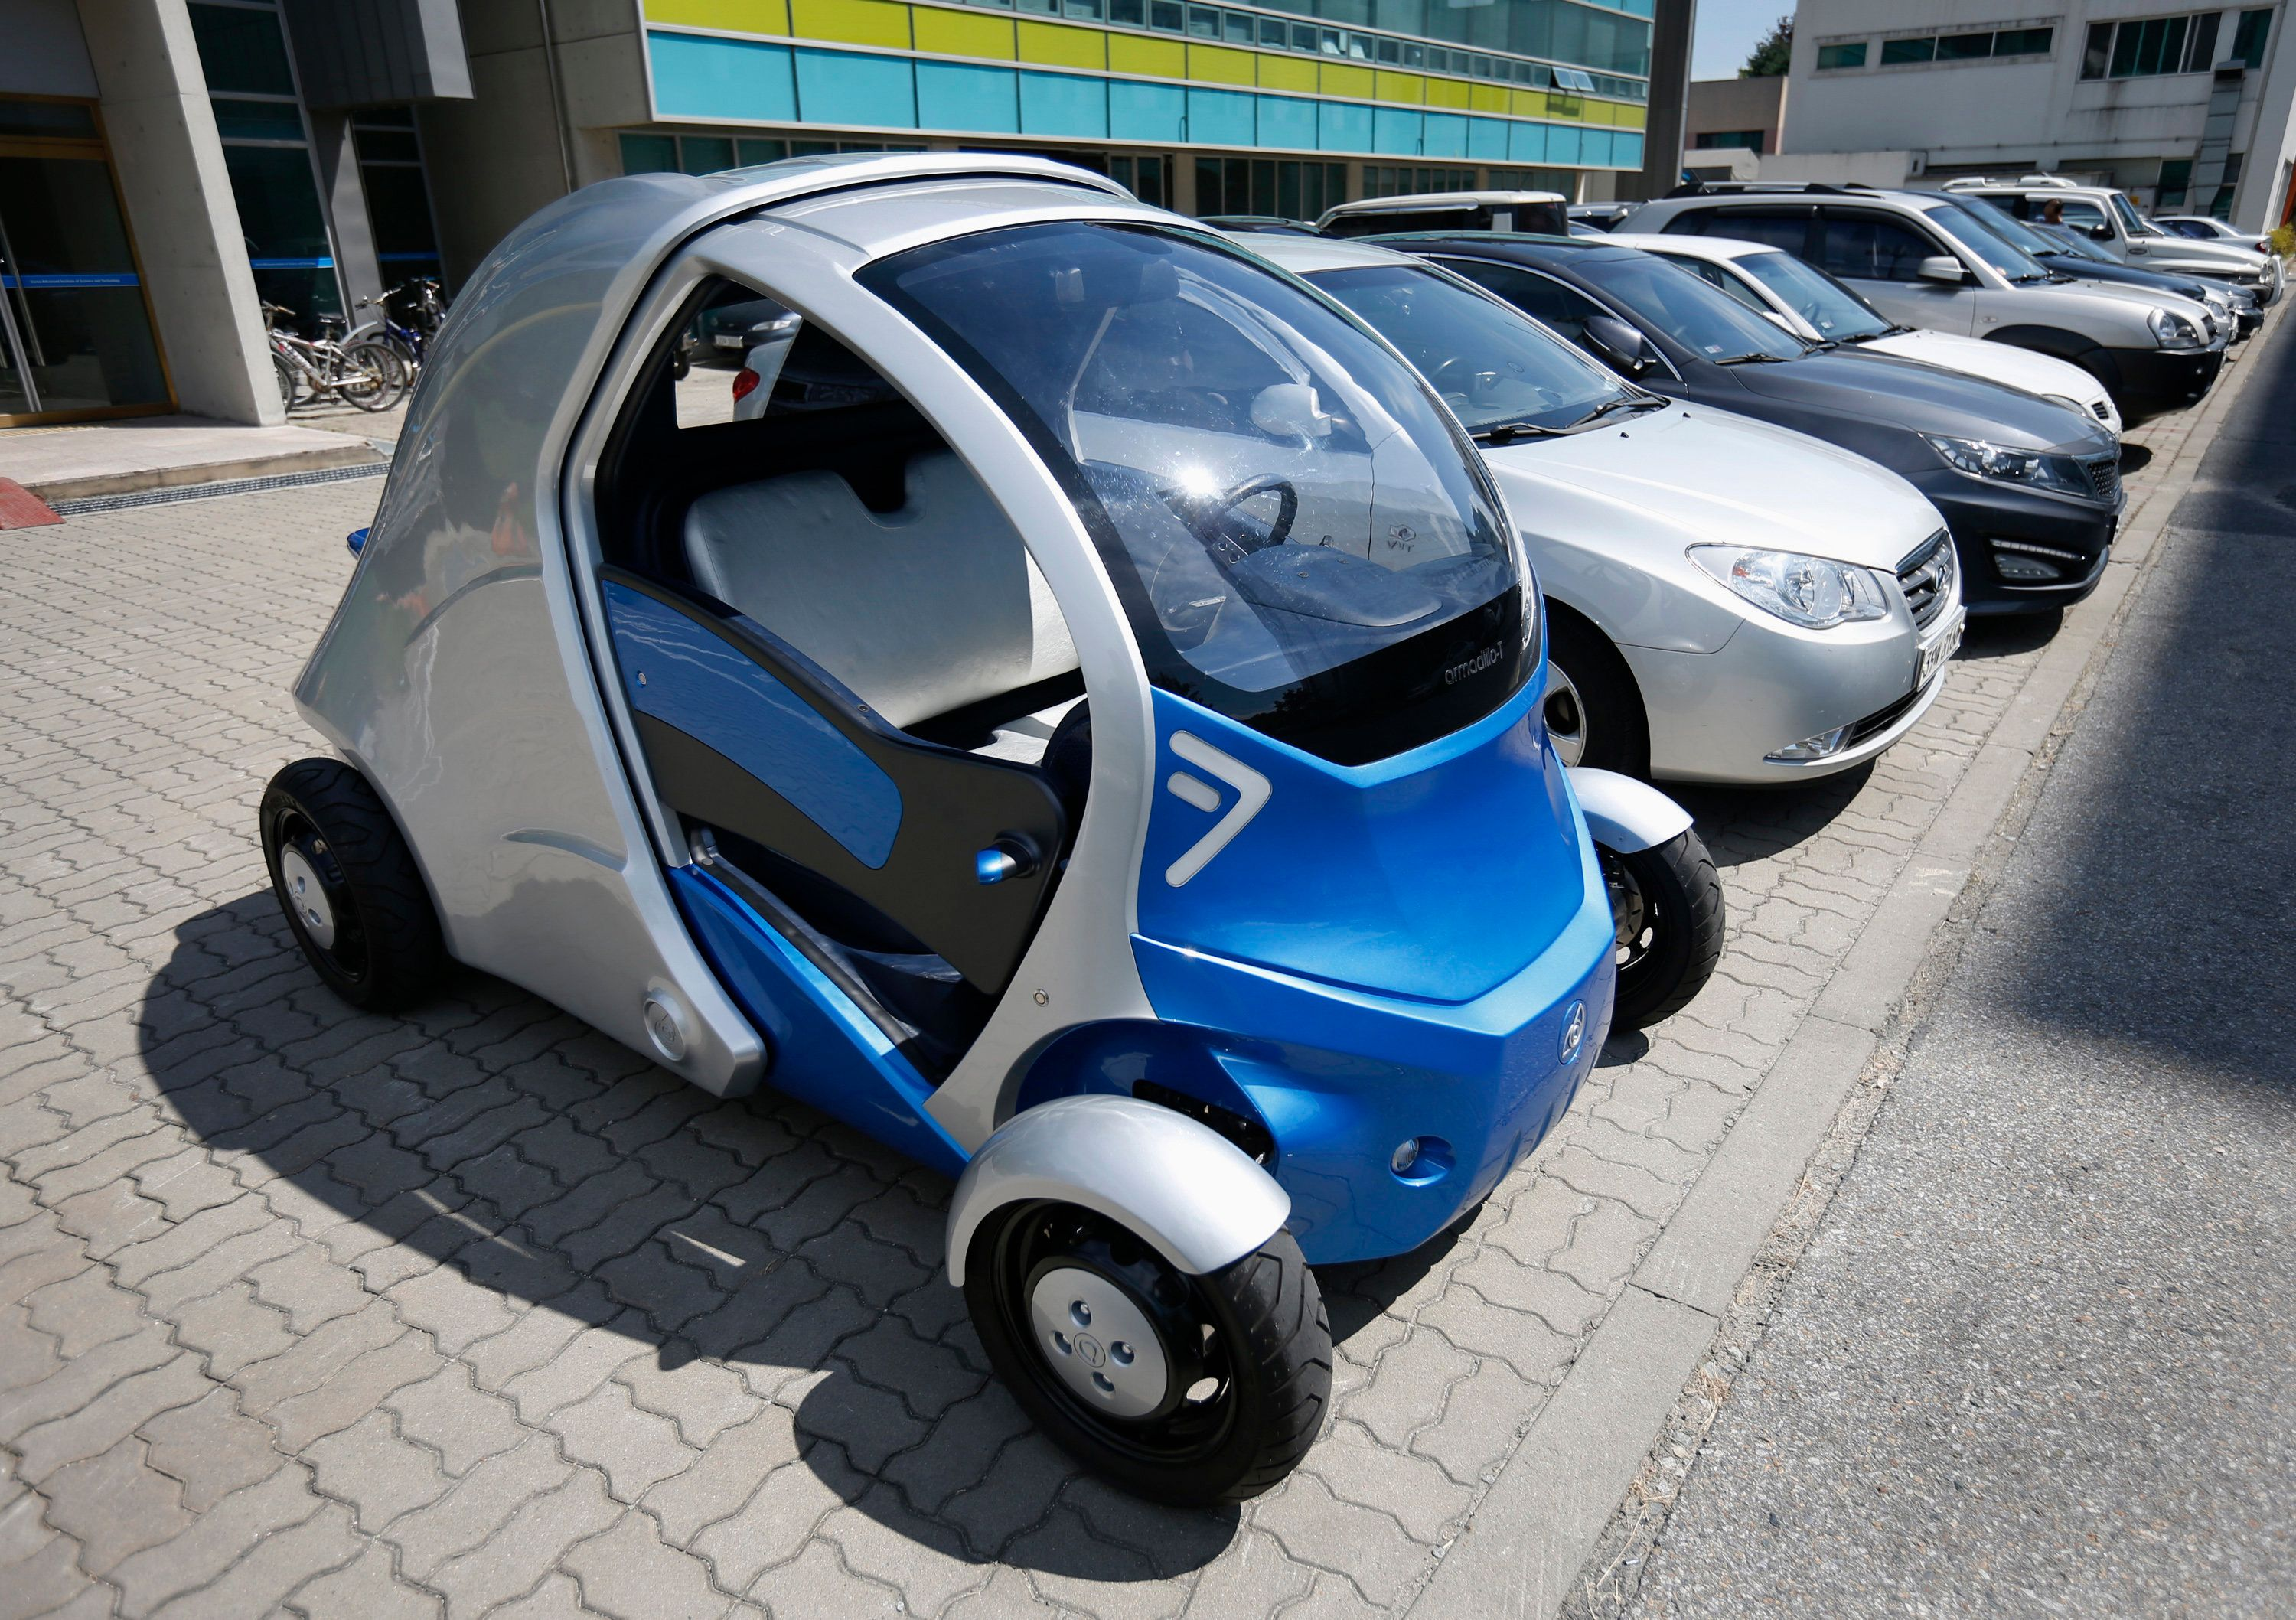 This collapsable electric vehicle uses batteries instead of combustion engines. Daejeon, South Korea, Sept. 2, 2013.